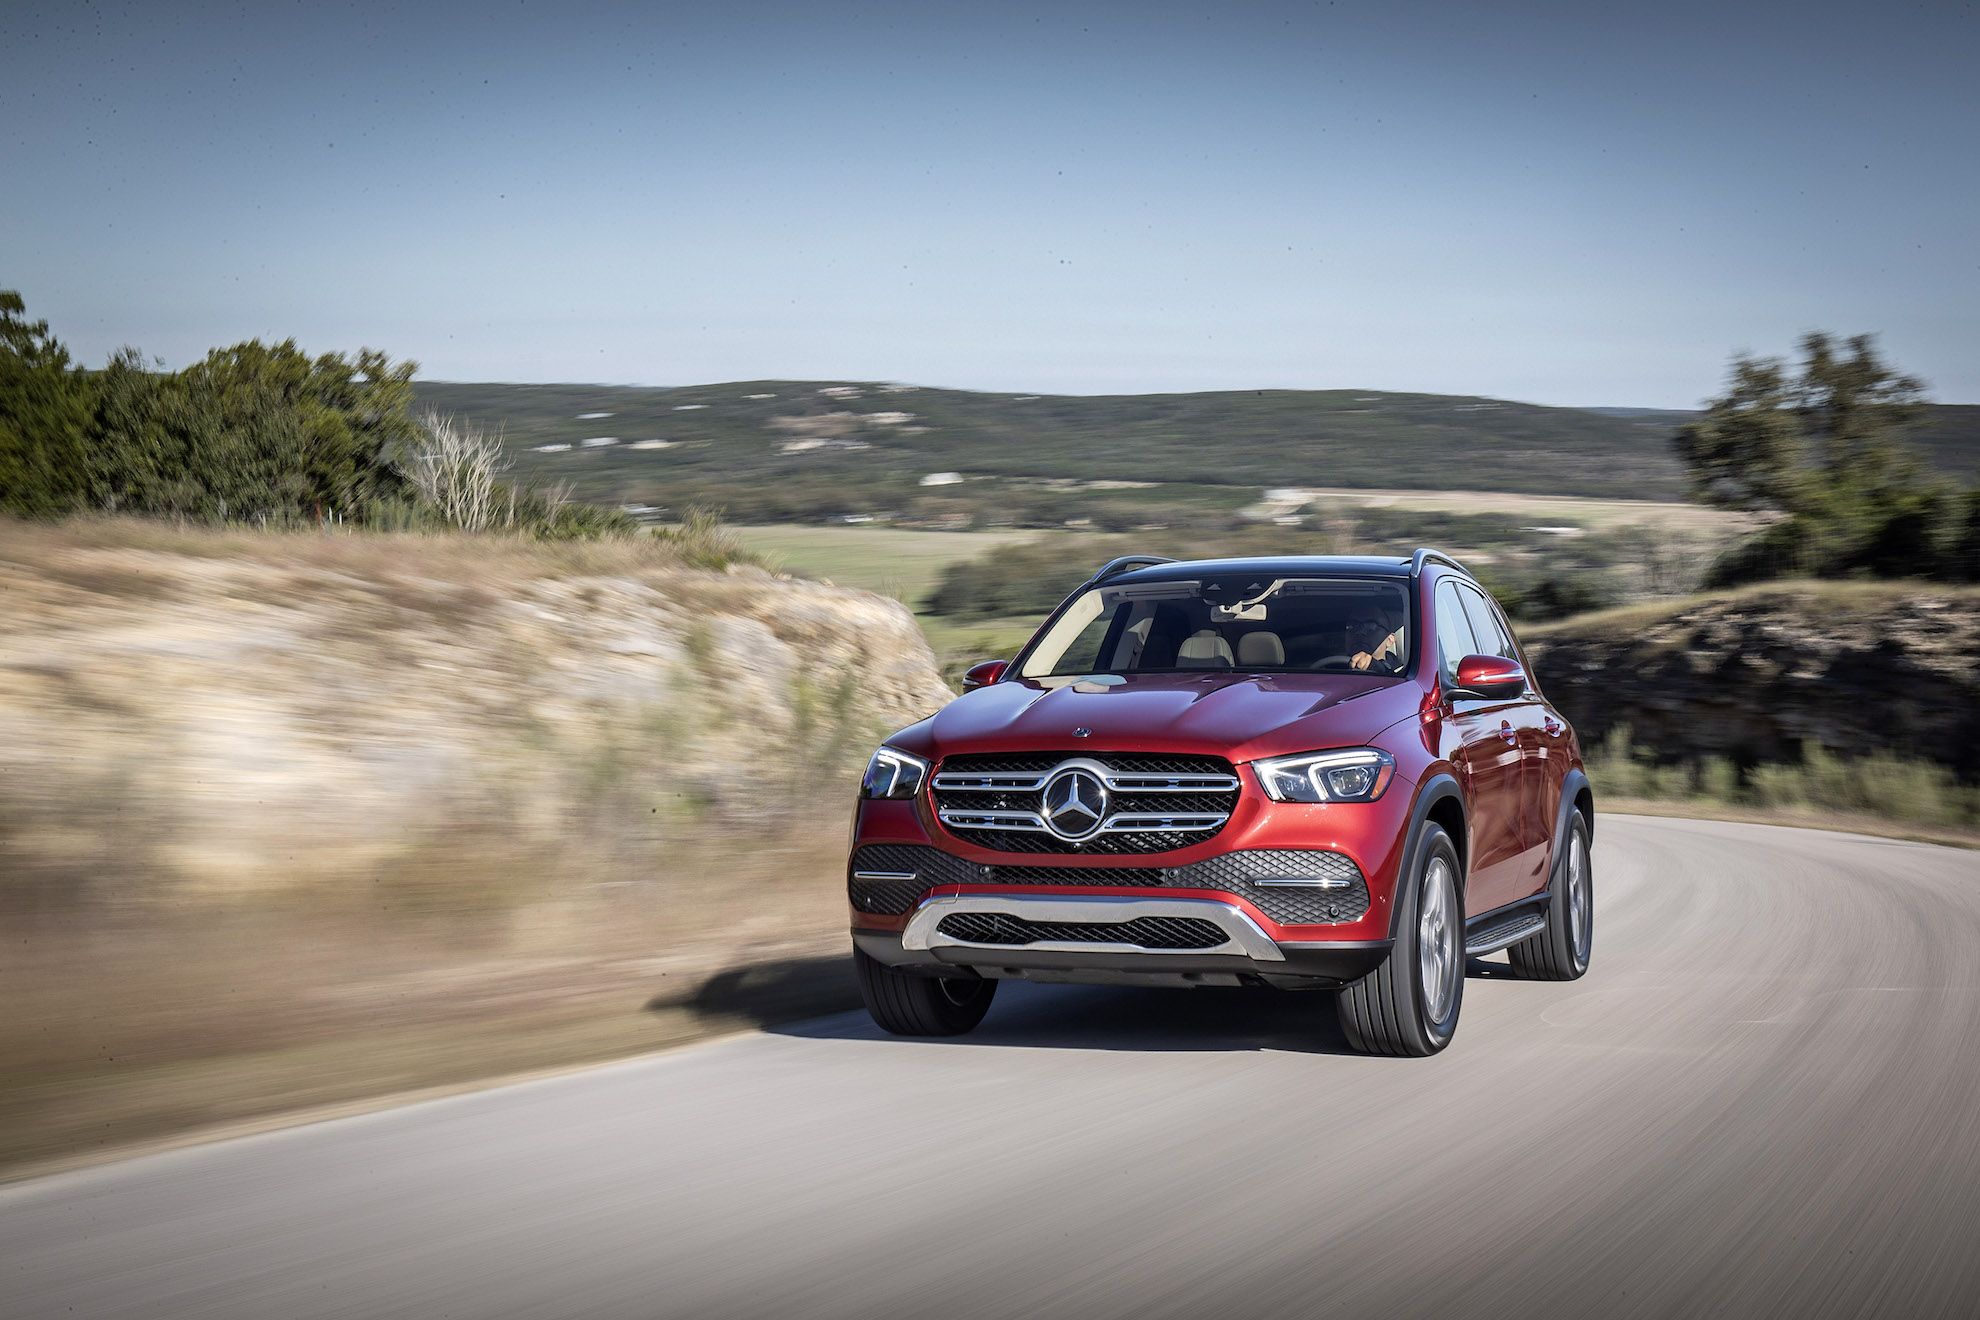 2020 GLE from the front on the road